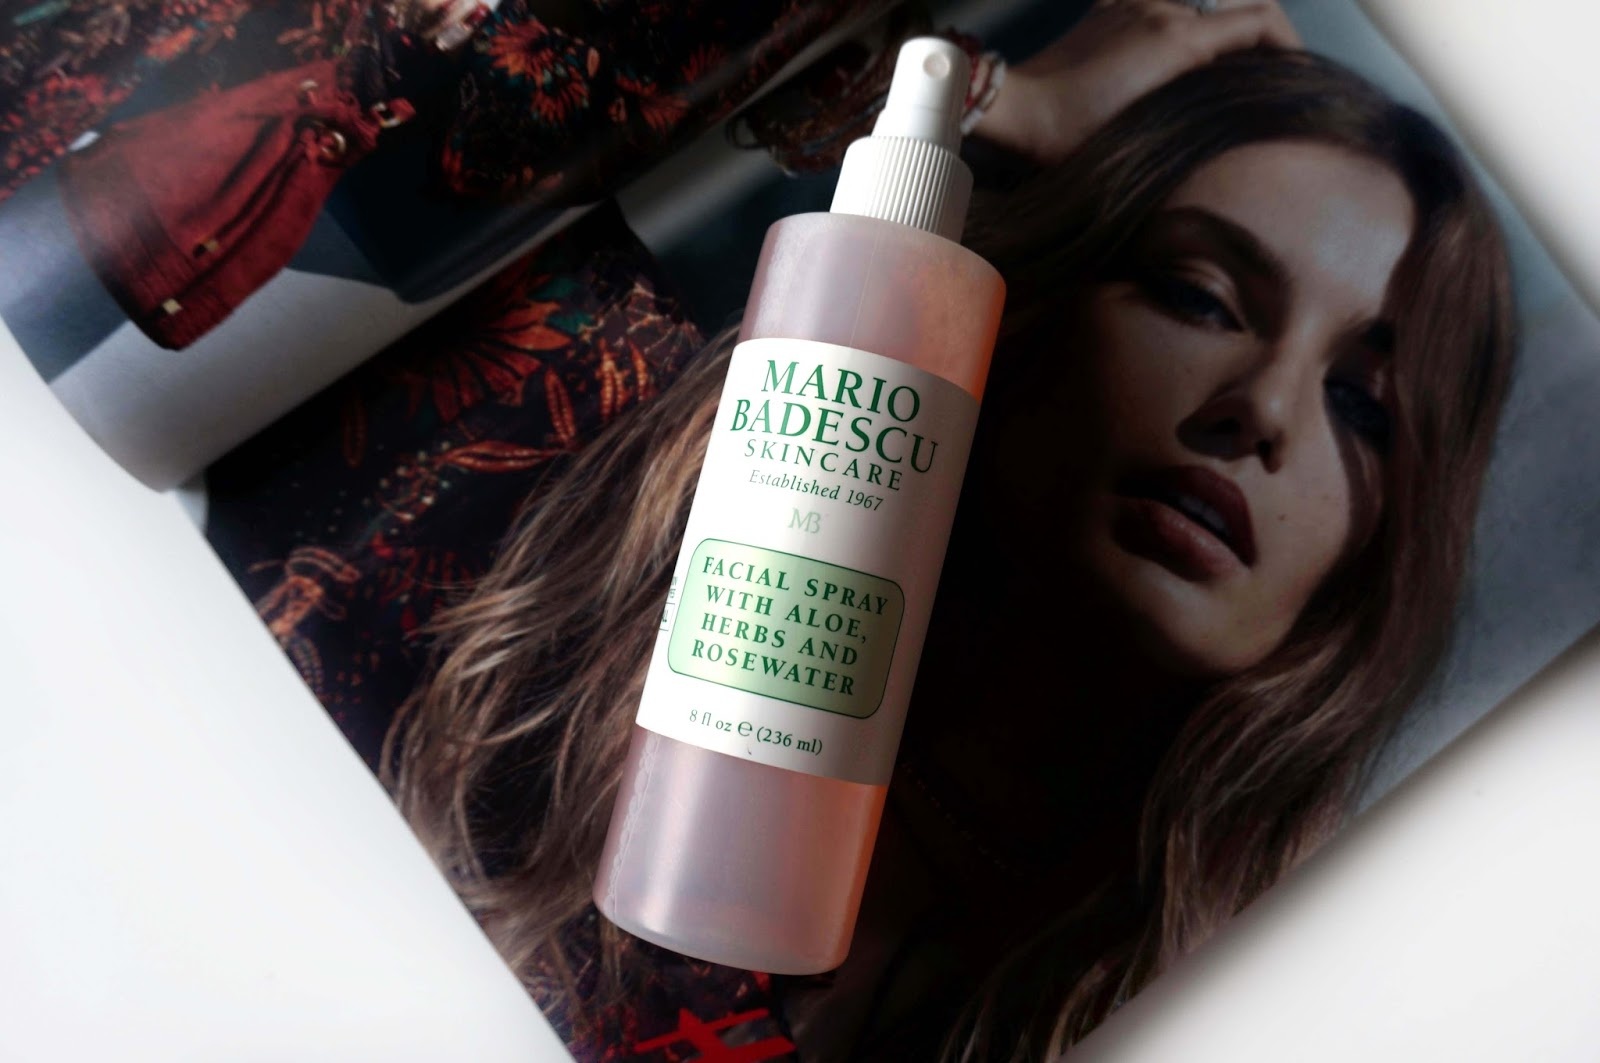 The Mario Badescu Facial Spray Is A Firm Favourite Of Mine Since It Is A  Spritz Of Hydration It Has A Lovely Rose's Scent And Can Be Used As A  Toner Too